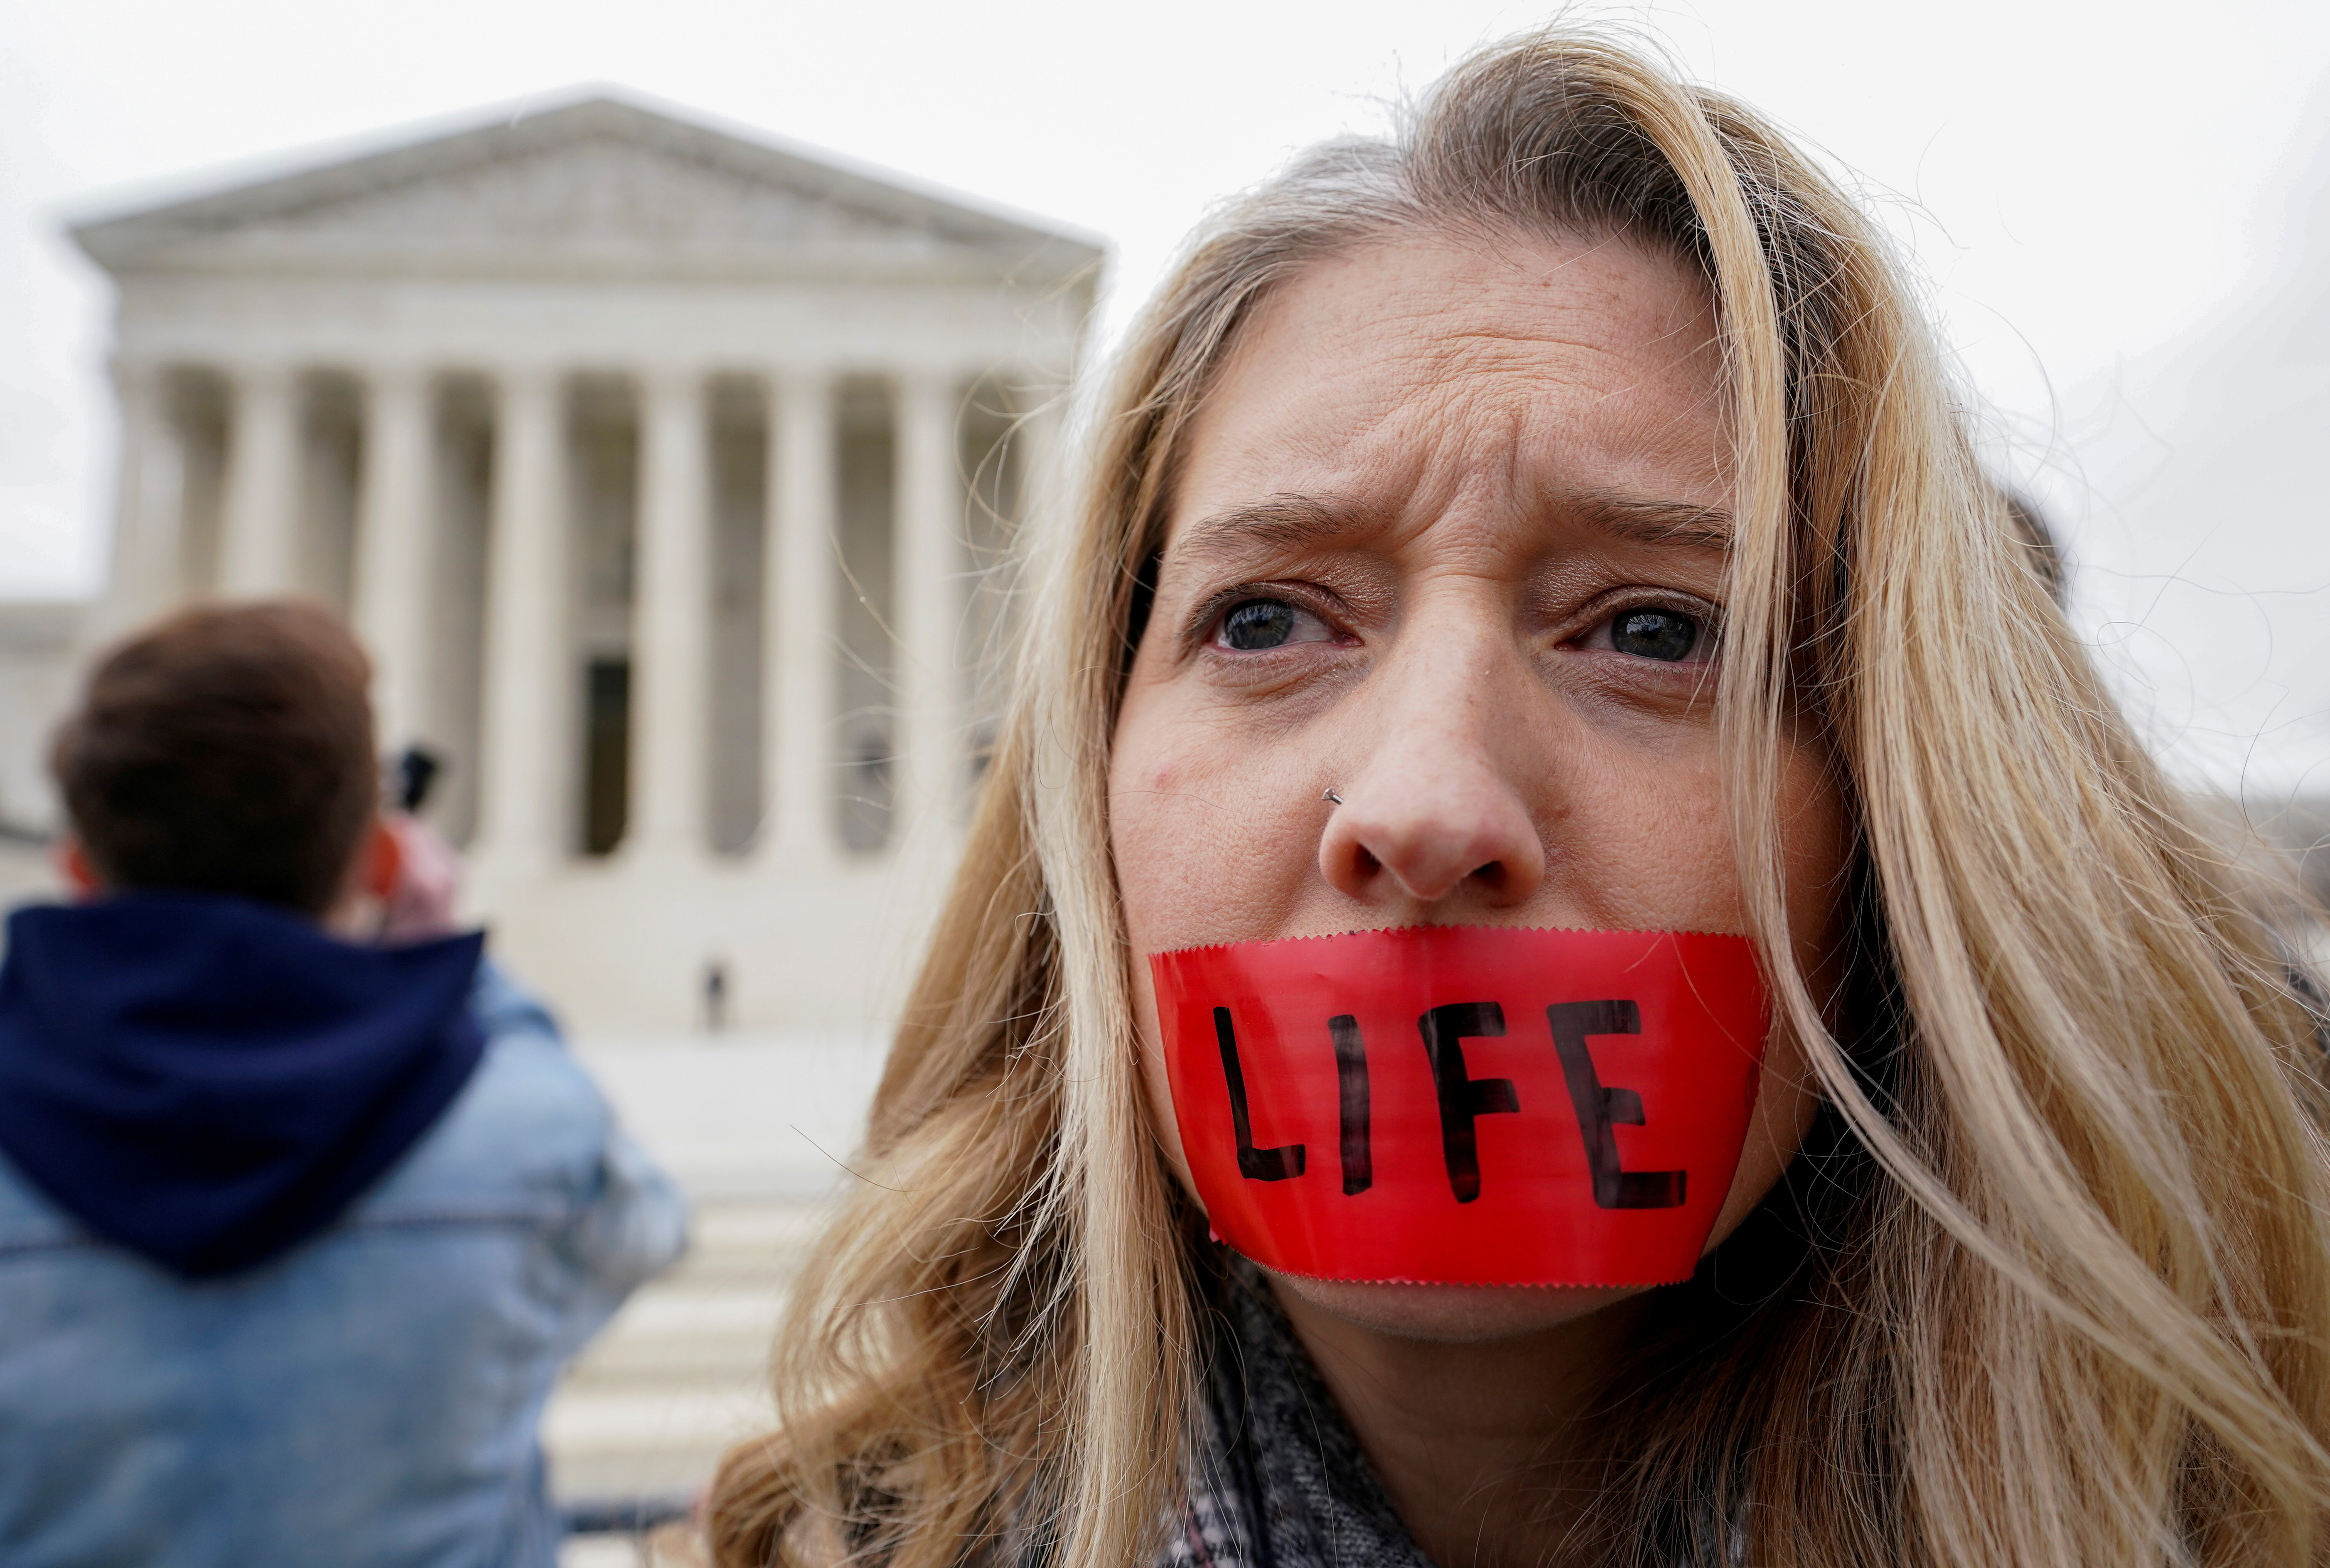 An anti-abortion activist rallies outside the U.S. Supreme Court during the the 47th annual March for Life in Washington, U.S., January 24, 2020. REUTERS/Kevin Lamarque